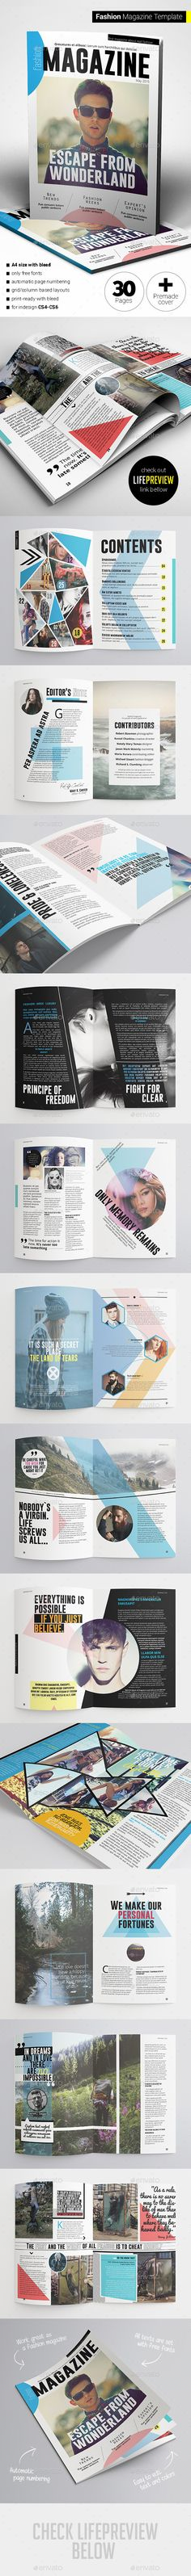 Fashion Magazine Template #design #journal Download: http://graphicriver.net/item/fashion-magazine/11383480?ref=ksioks